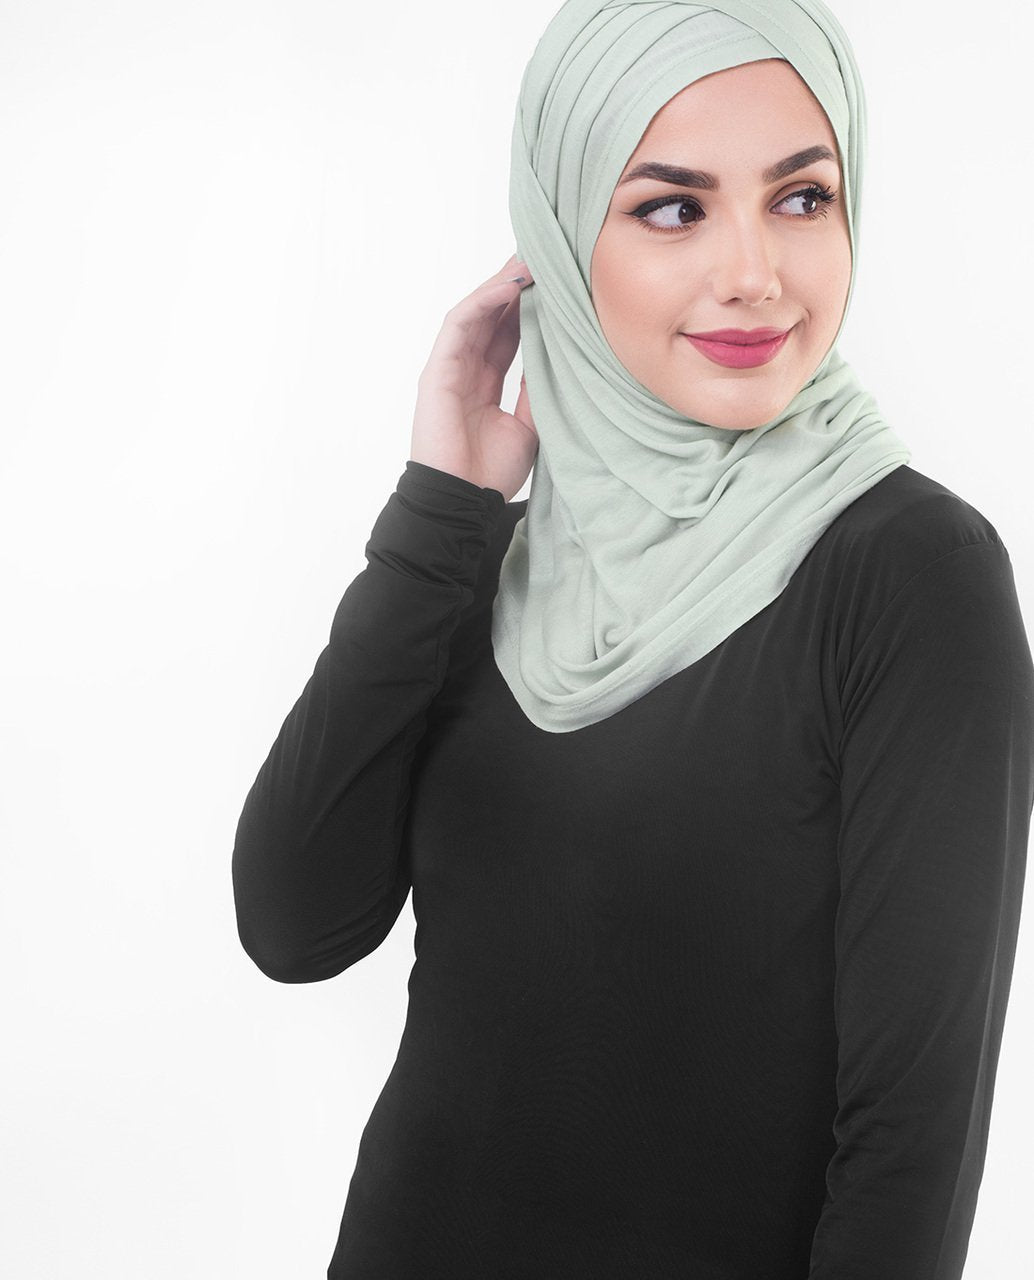 Sea Foam Viscose Jersey Hijab Regular Sea Foam